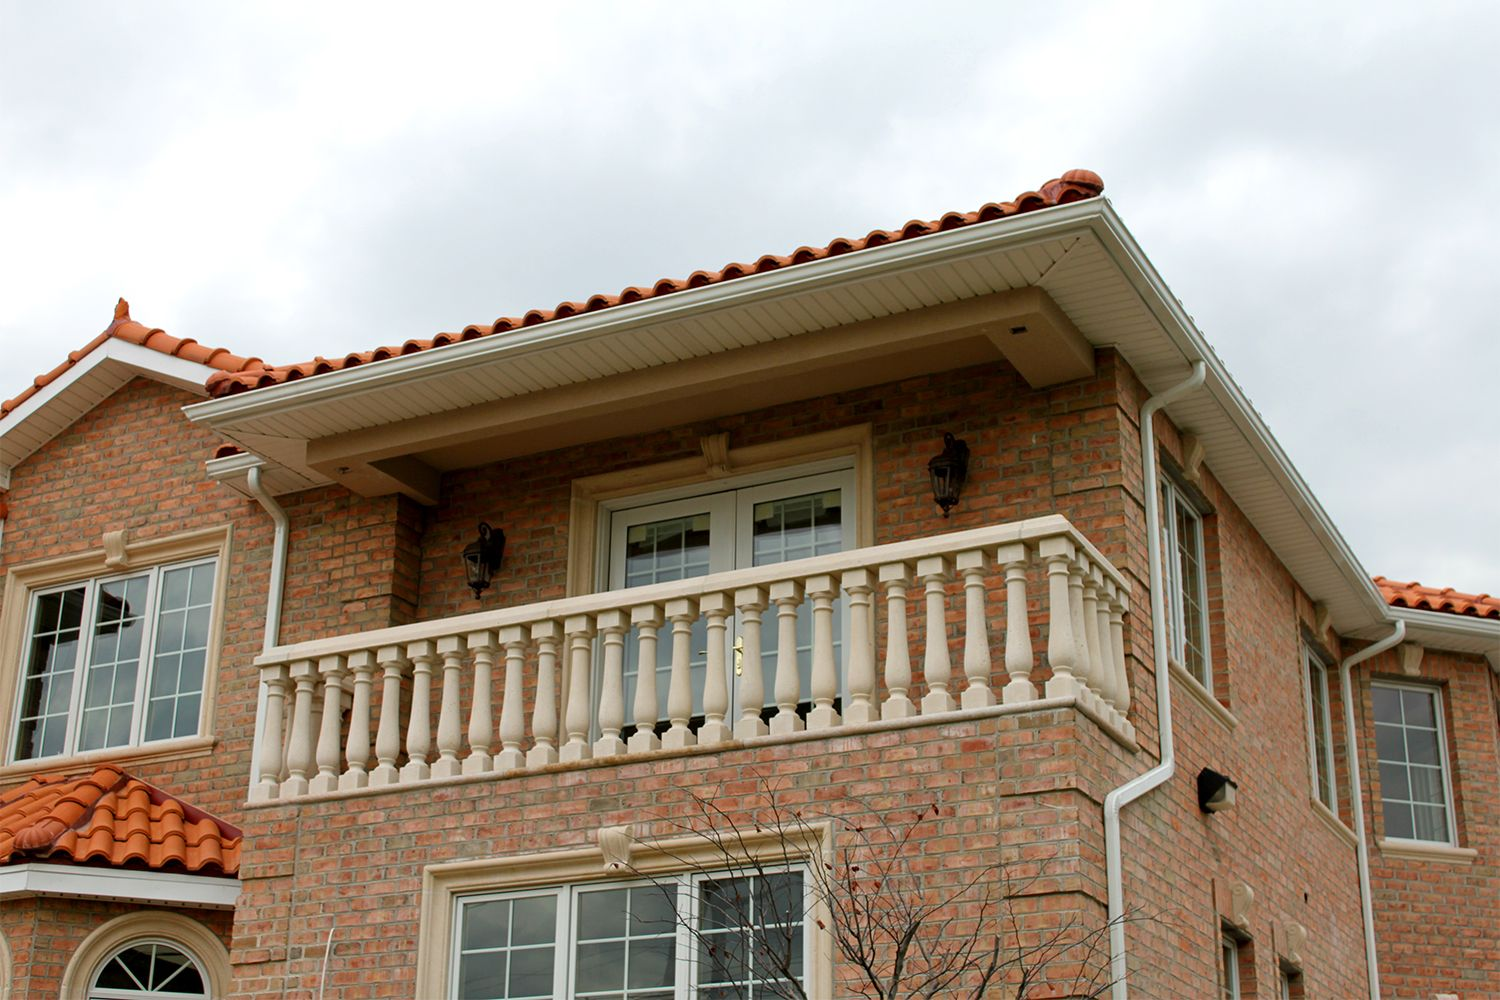 Balcony using balustrade system that consists of posts and ...